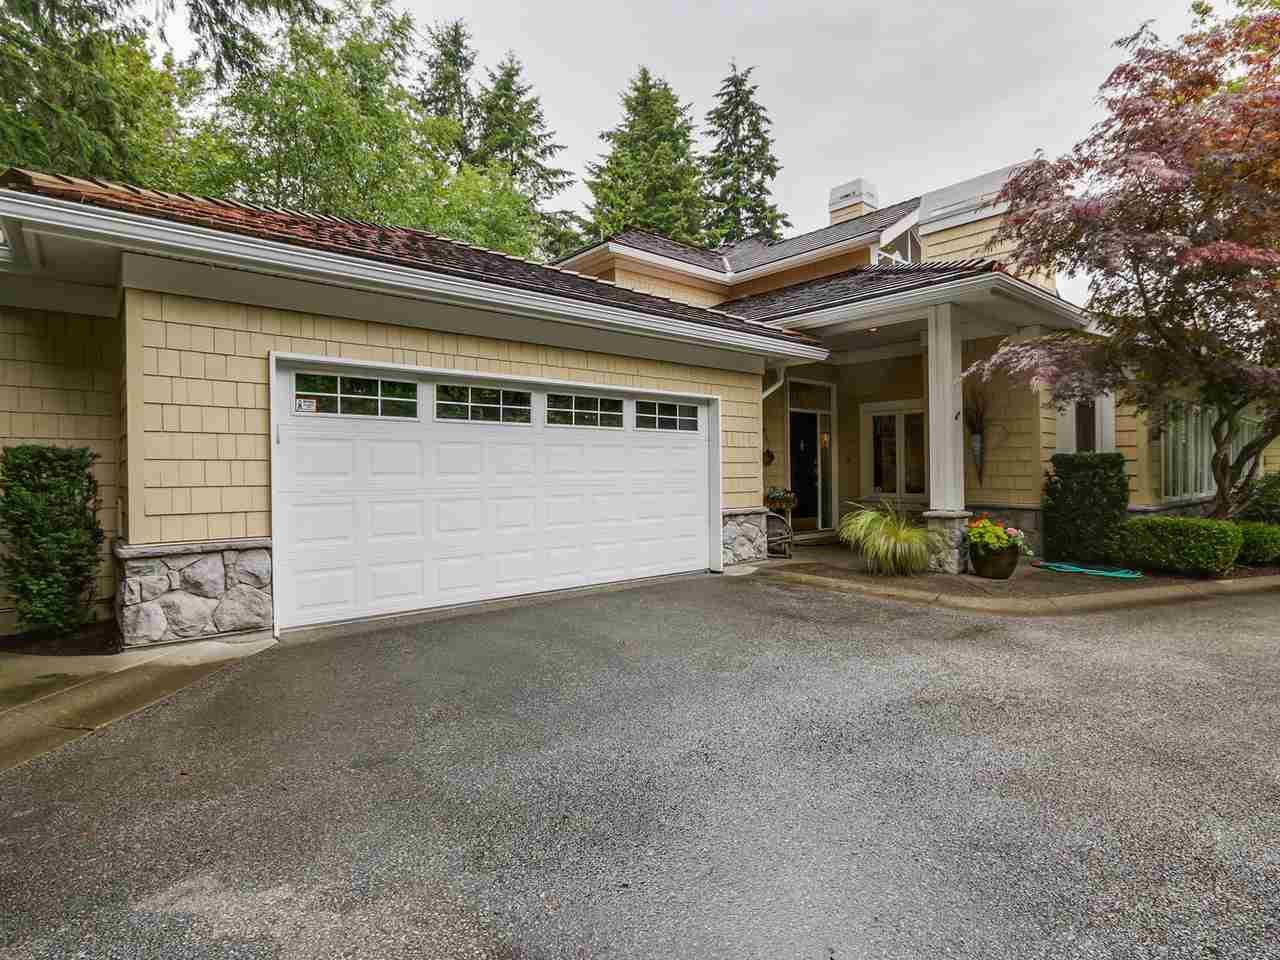 "Main Photo: 9 3225 MORGAN CREEK Way in Surrey: Morgan Creek Townhouse for sale in ""Deer Run"" (South Surrey White Rock)  : MLS® # R2087190"